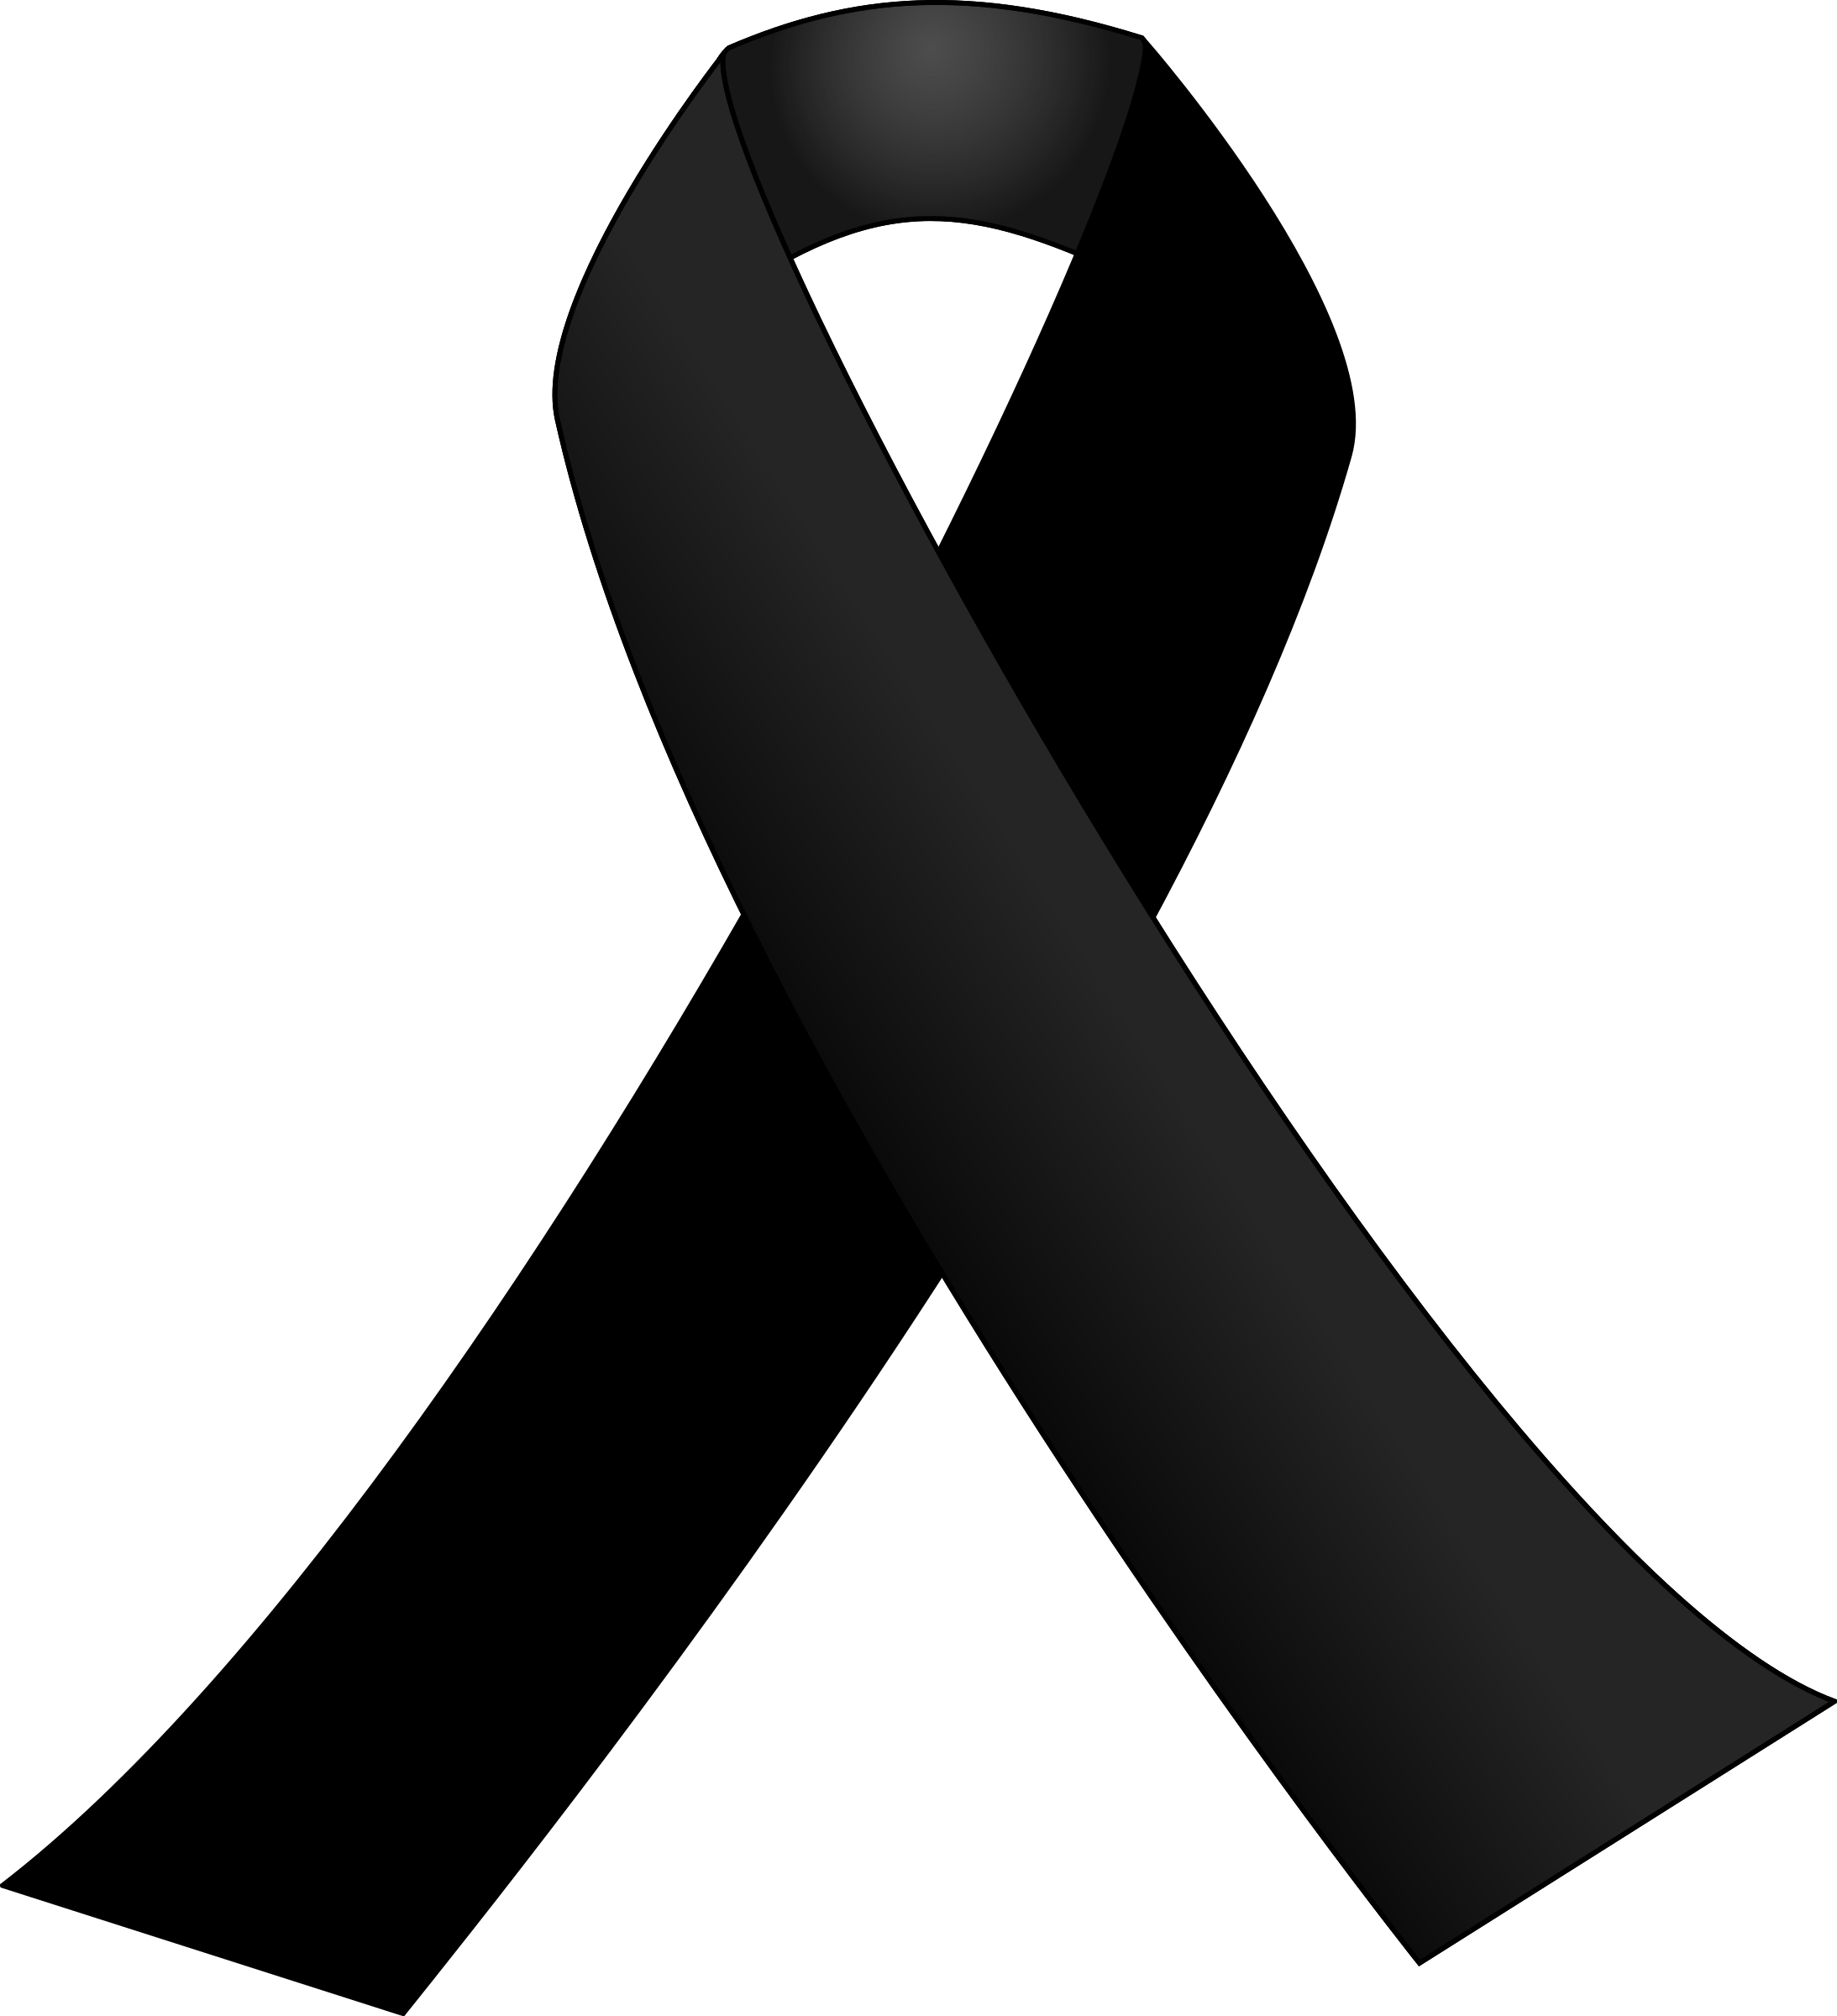 Cancer vector epilepsy ribbon. Black icons png free